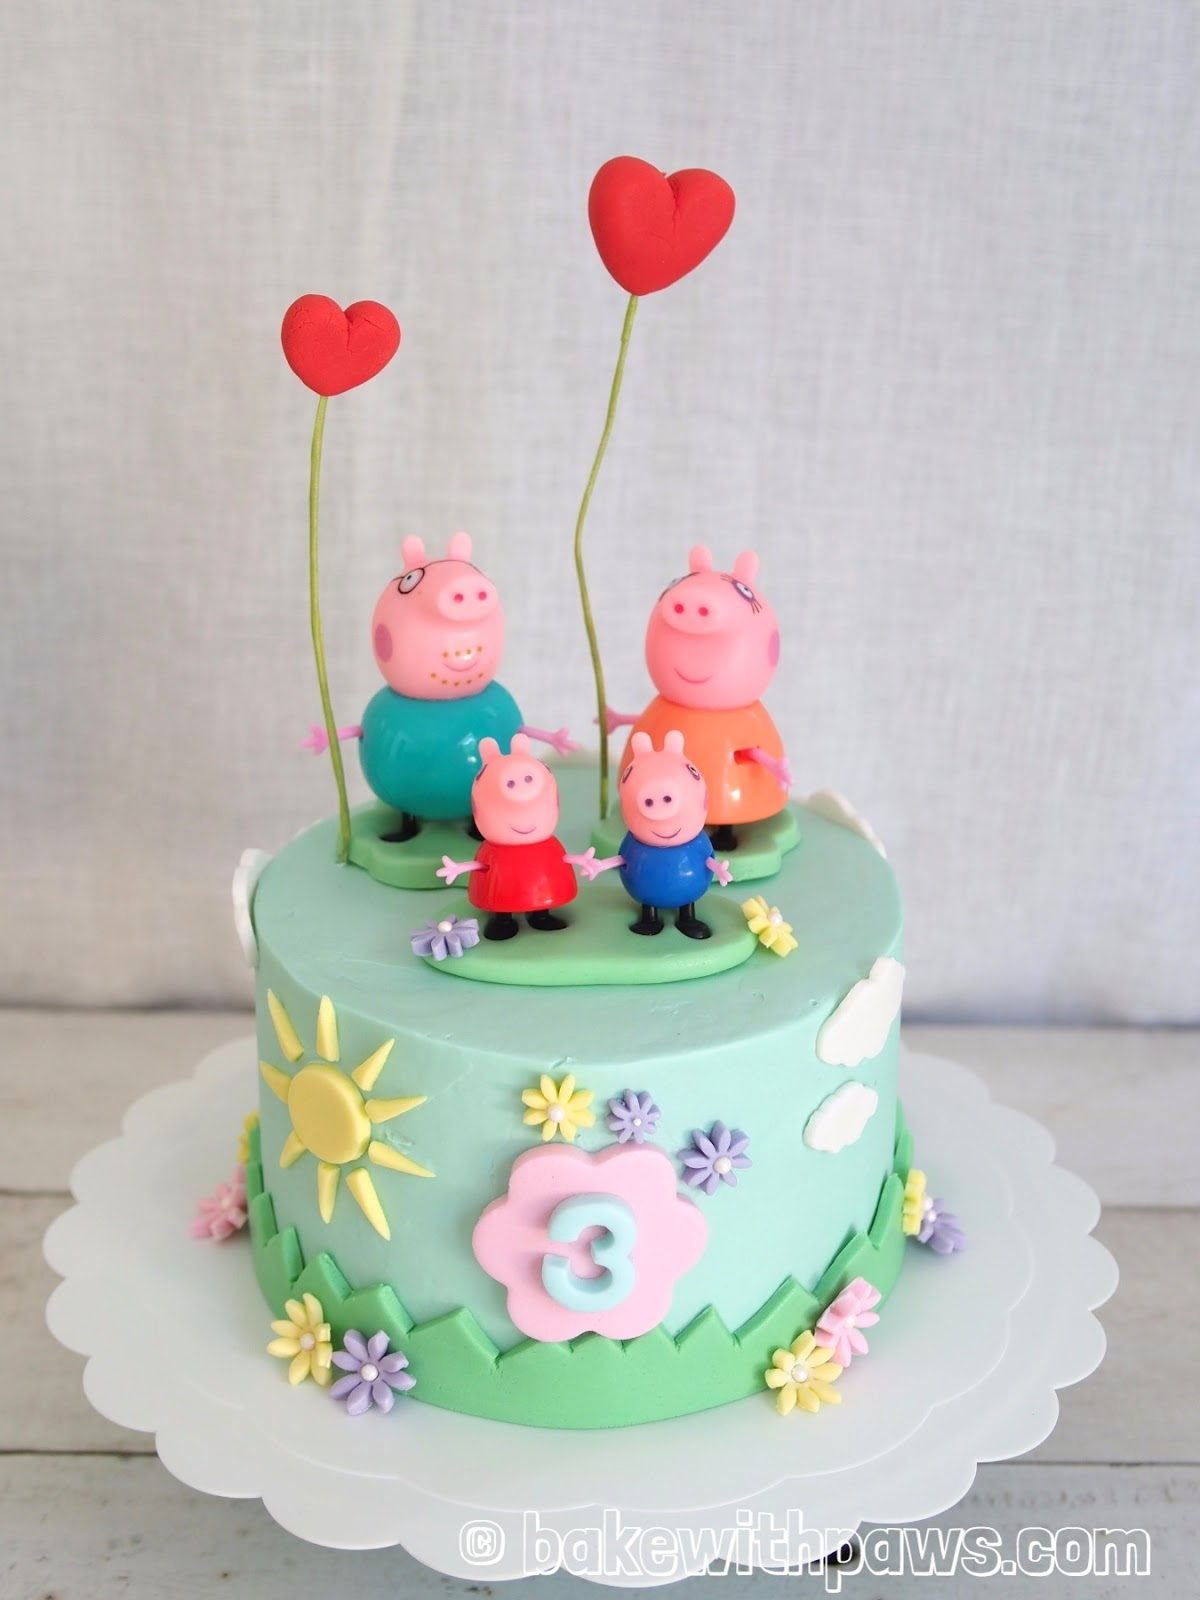 Peppa Pig Birthday Cake Peppa Pig Birthday Cake Bake With Paws